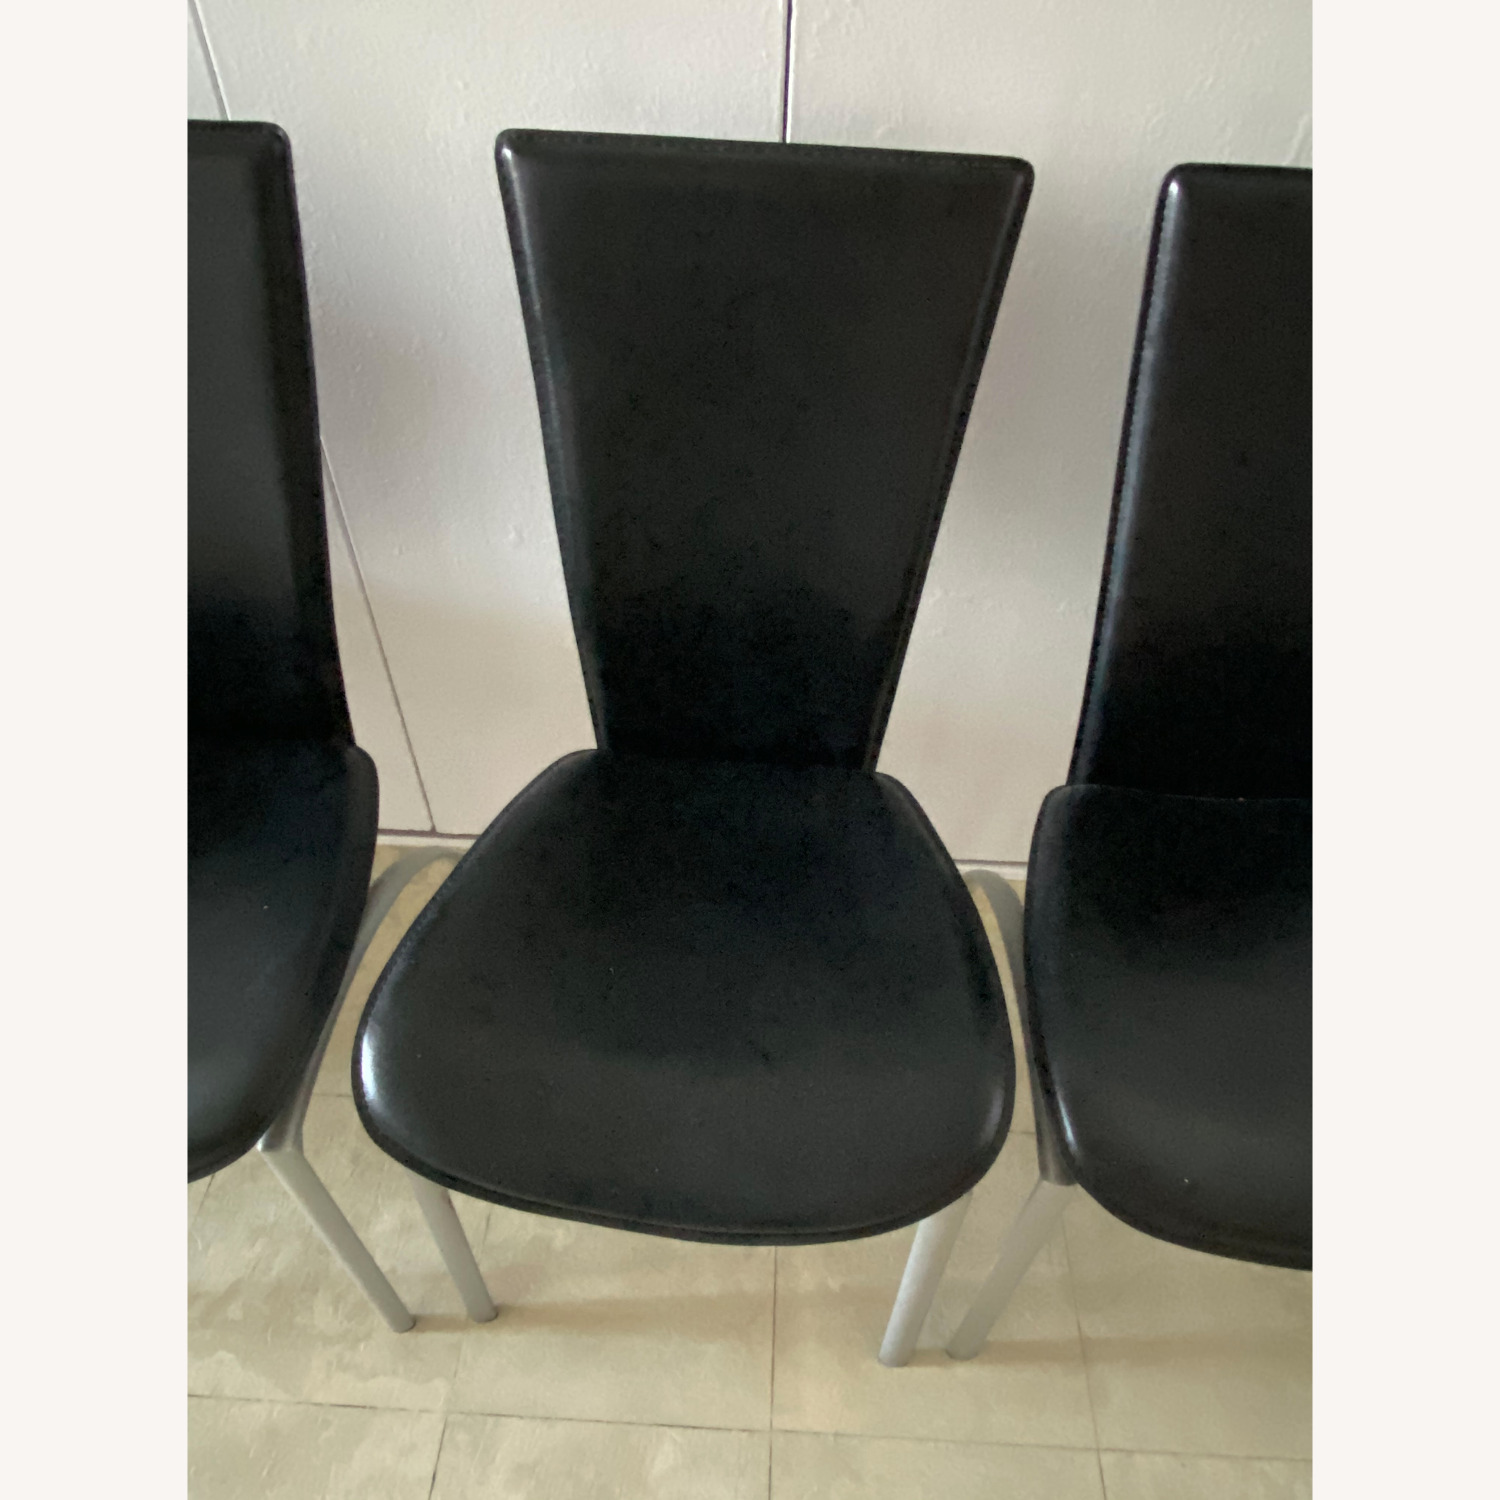 Glass Dining Table with 4 Chairs - image-25